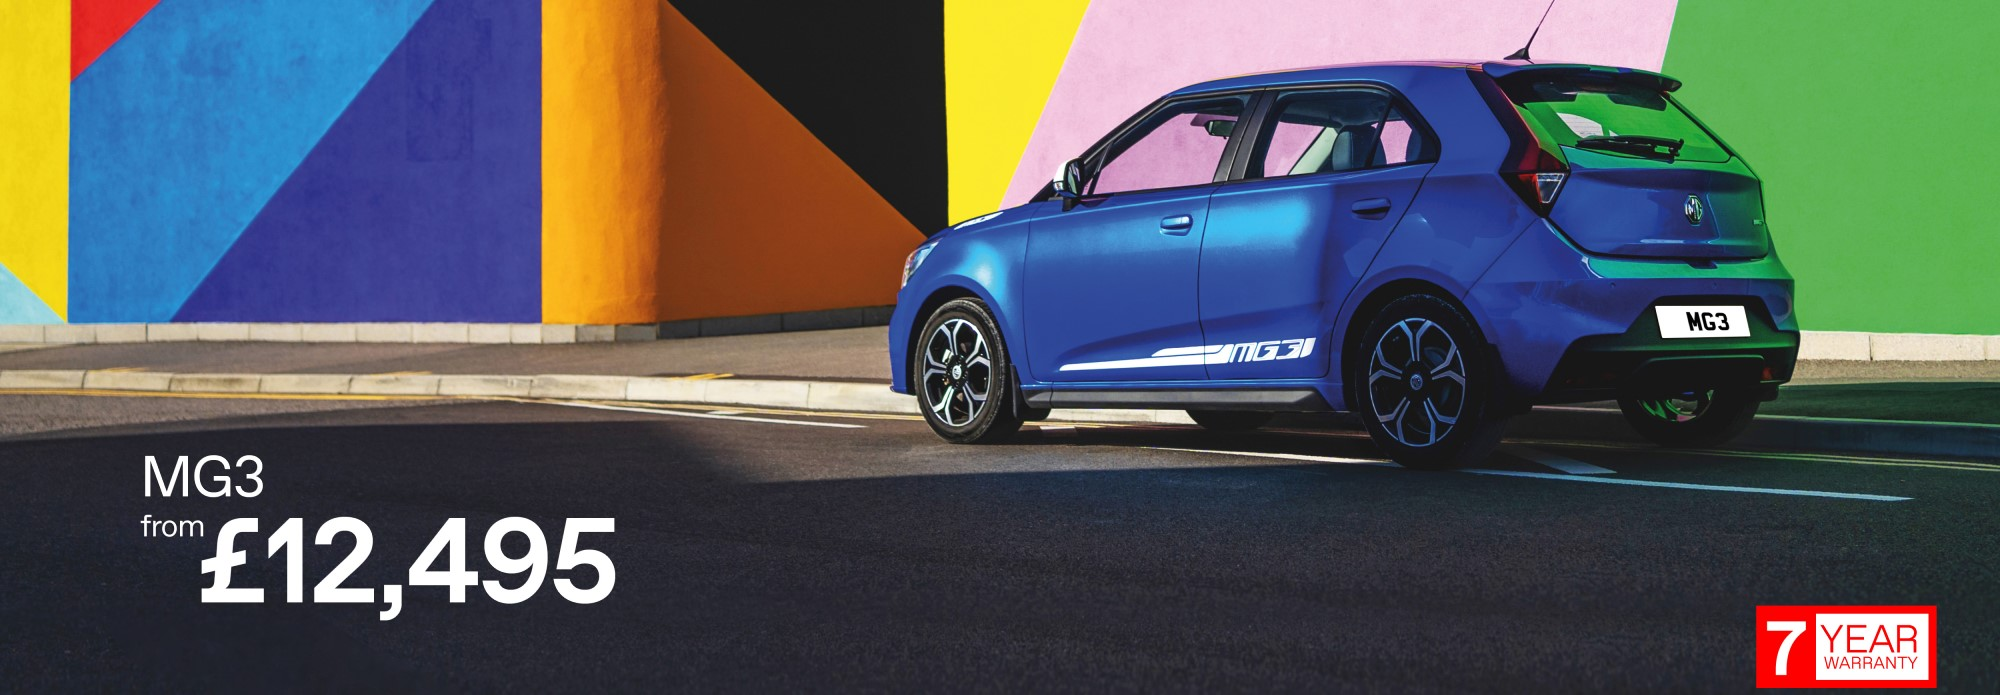 New Mg 3 - Overview